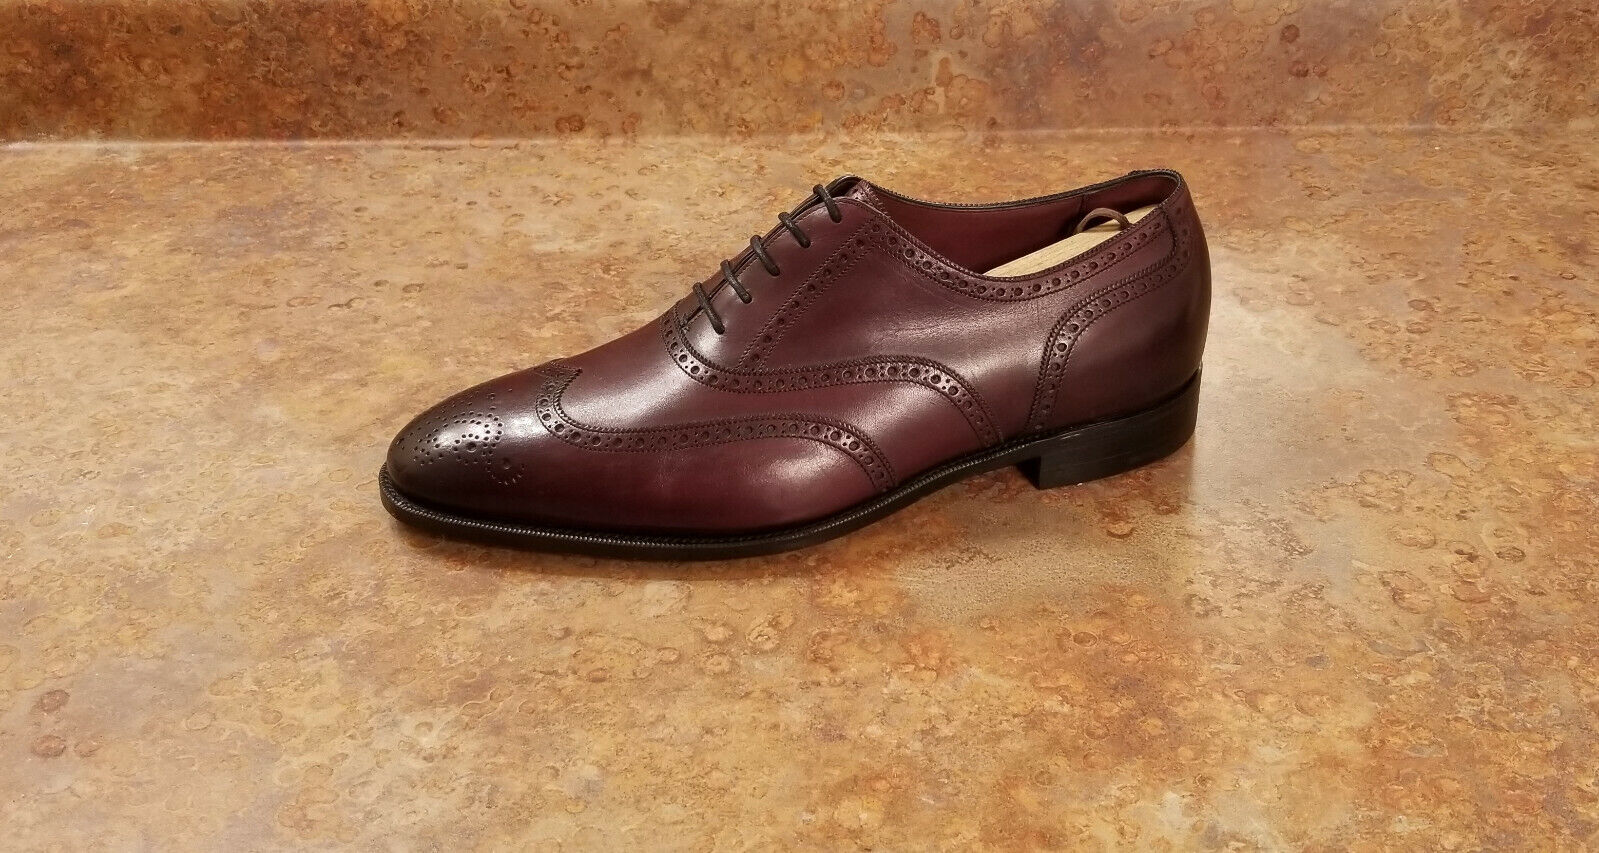 New Burberry Whitchester Derby Shoes Burgundy Mens 85 US 75 Eur MSRP 1995